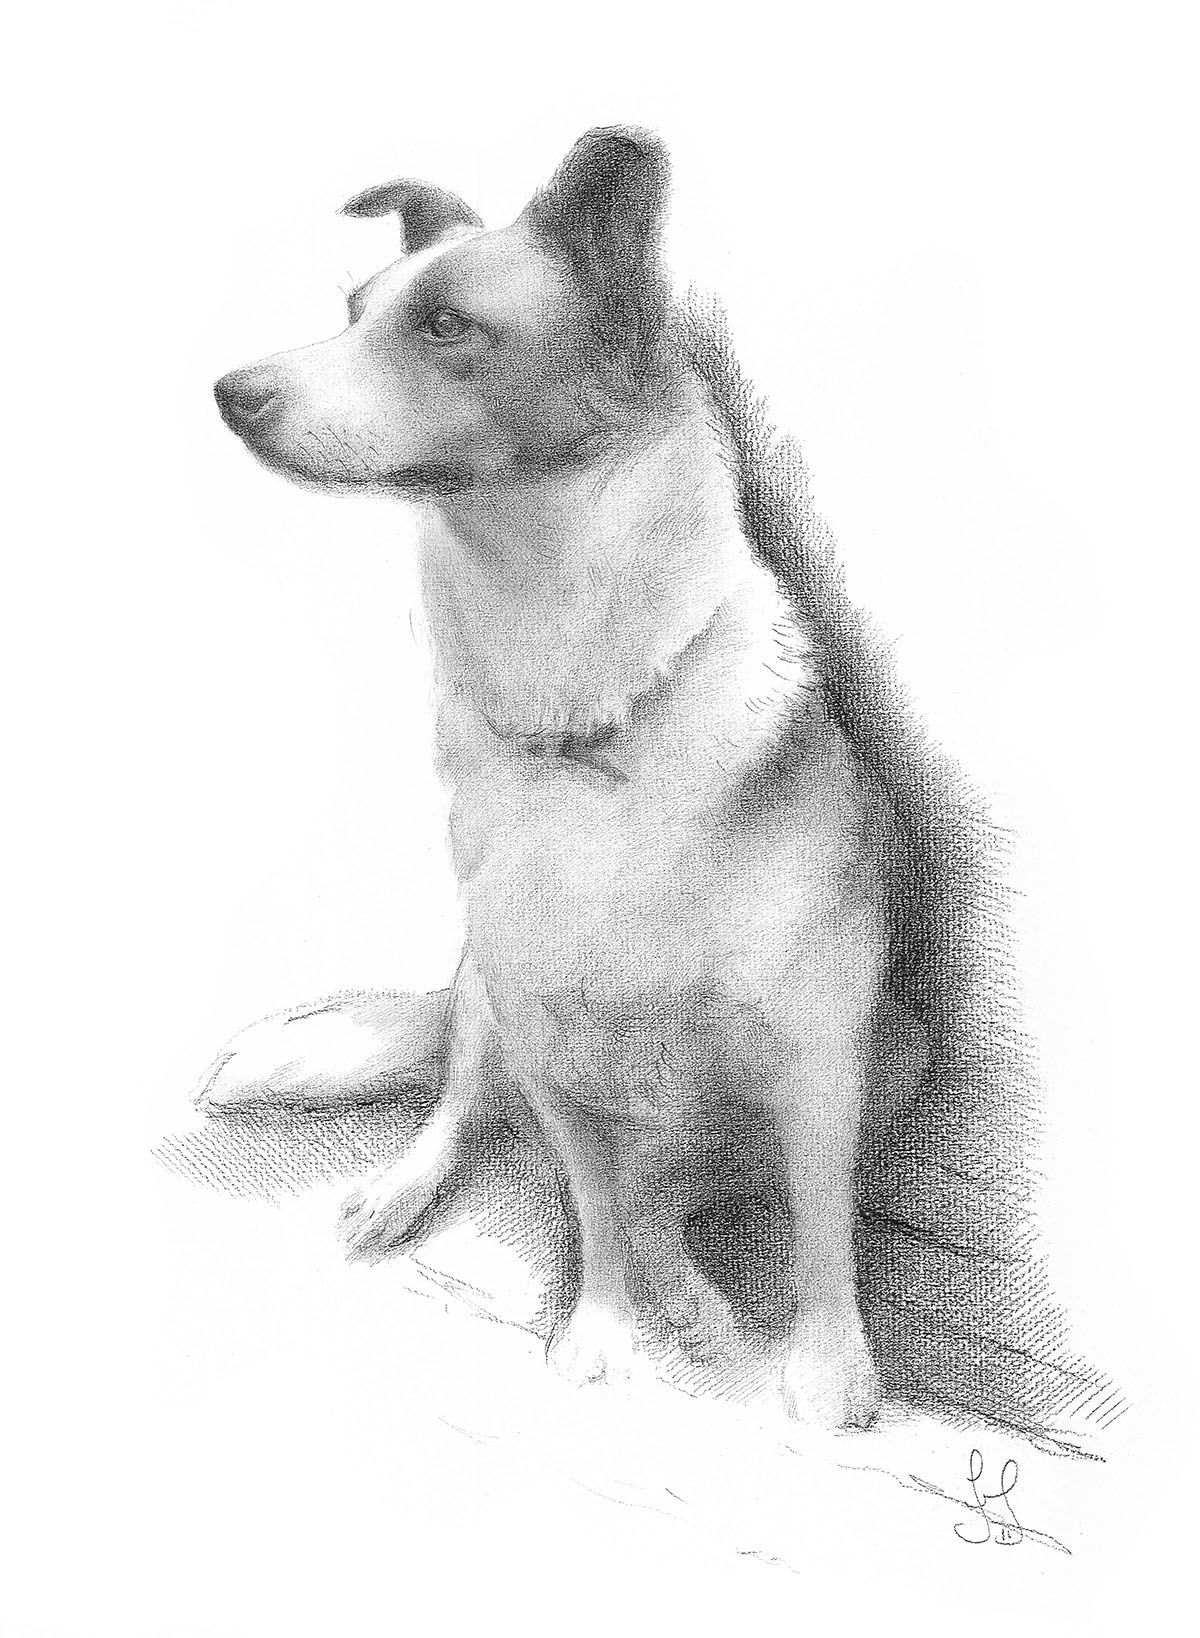 Taz - Carbon pencil drawing - Commission.